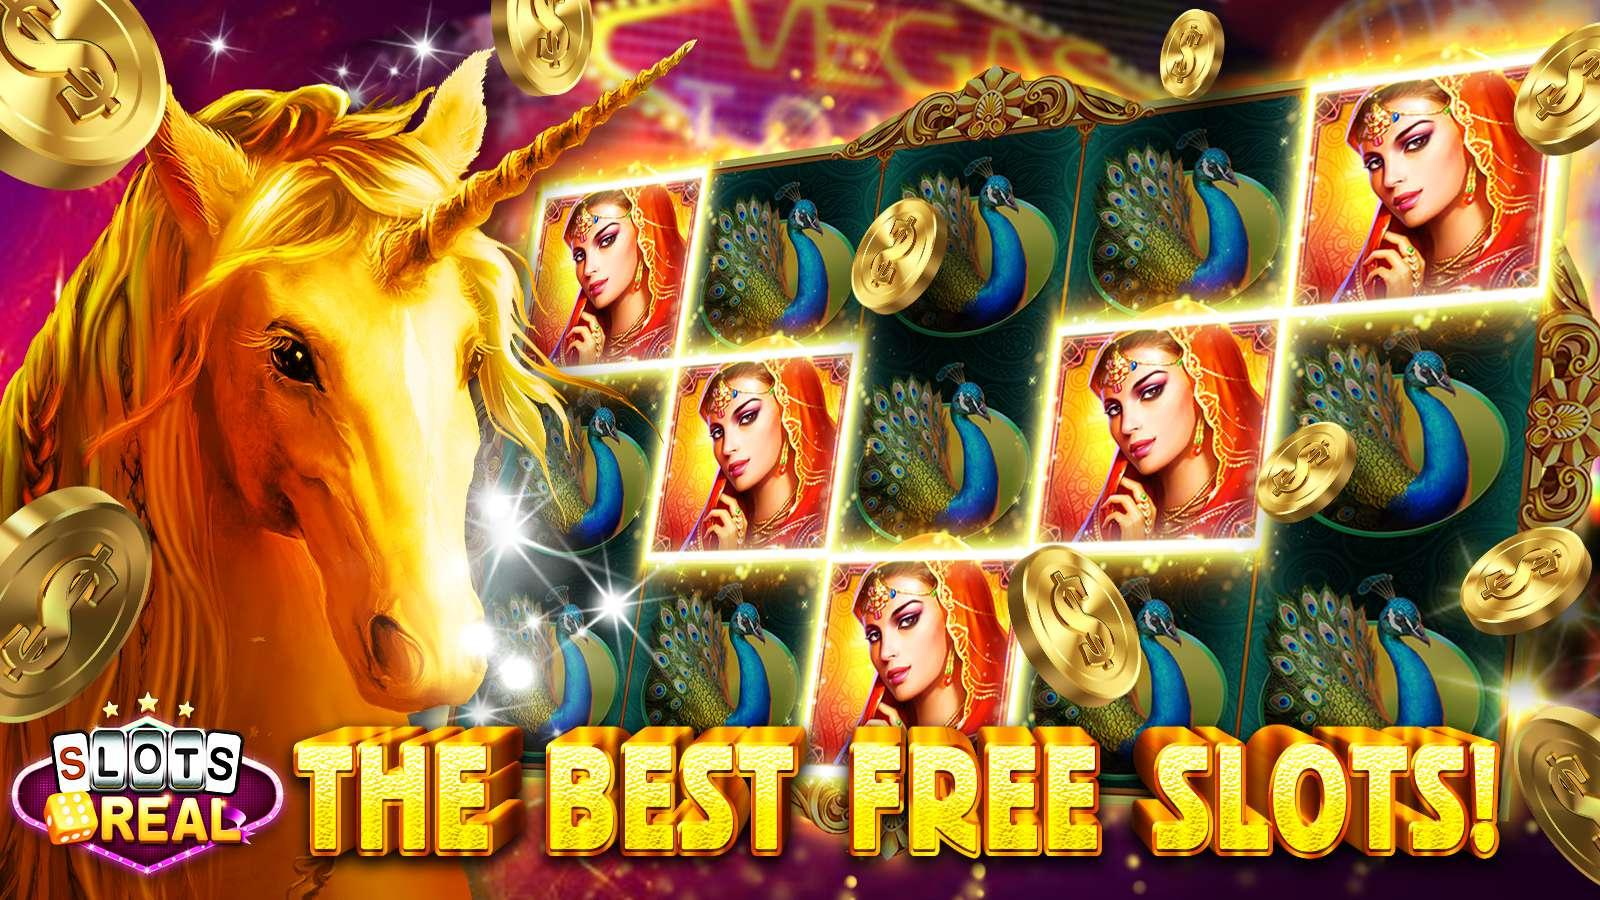 Banana Slot - Win Big Playing Online Casino Games